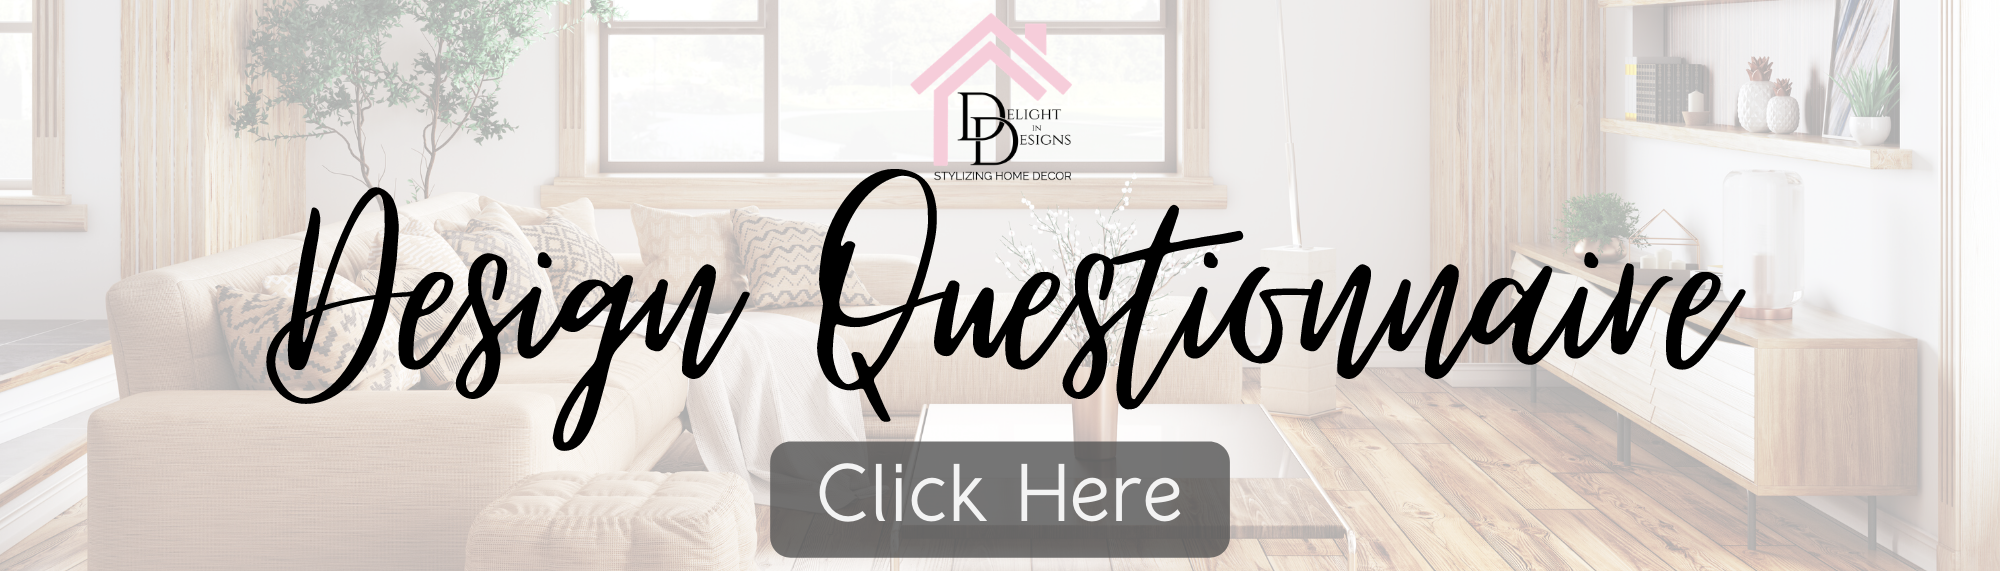 Delight In Designs-eDesign Packages-Design Questionnaire